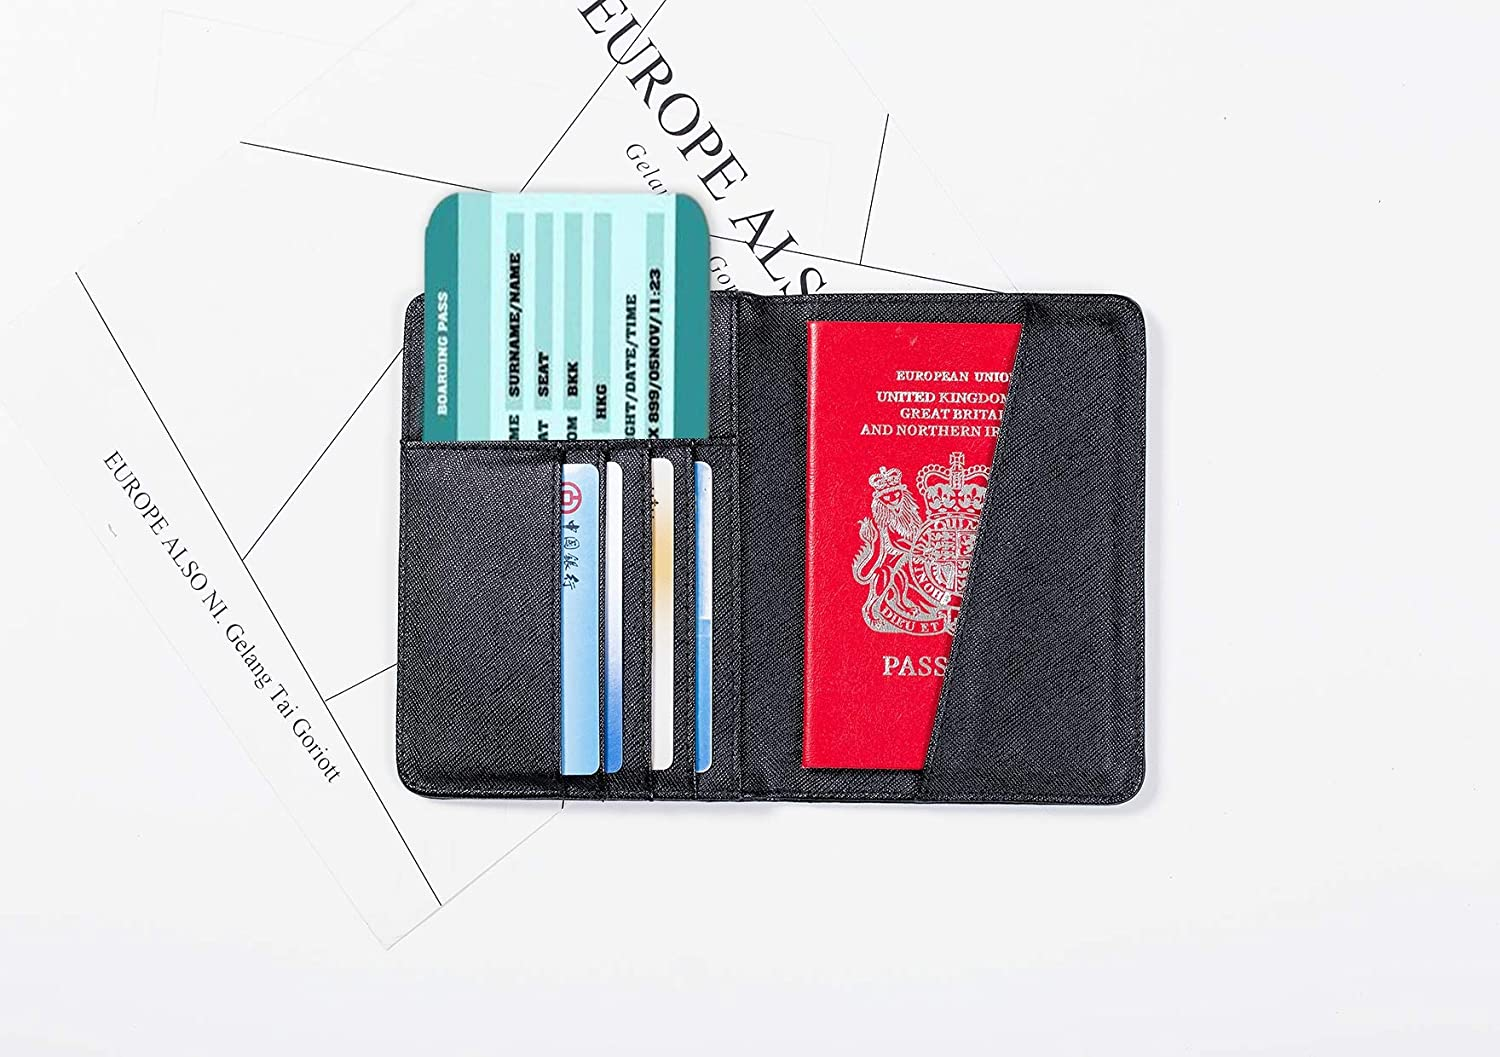 Best Passport Case Fashion Creative Cute Diving Equipment Usa Passport Cover Multi Purpose Print Passport Covers Women Travel Wallets For Unisex 5.51x4.37 Inch